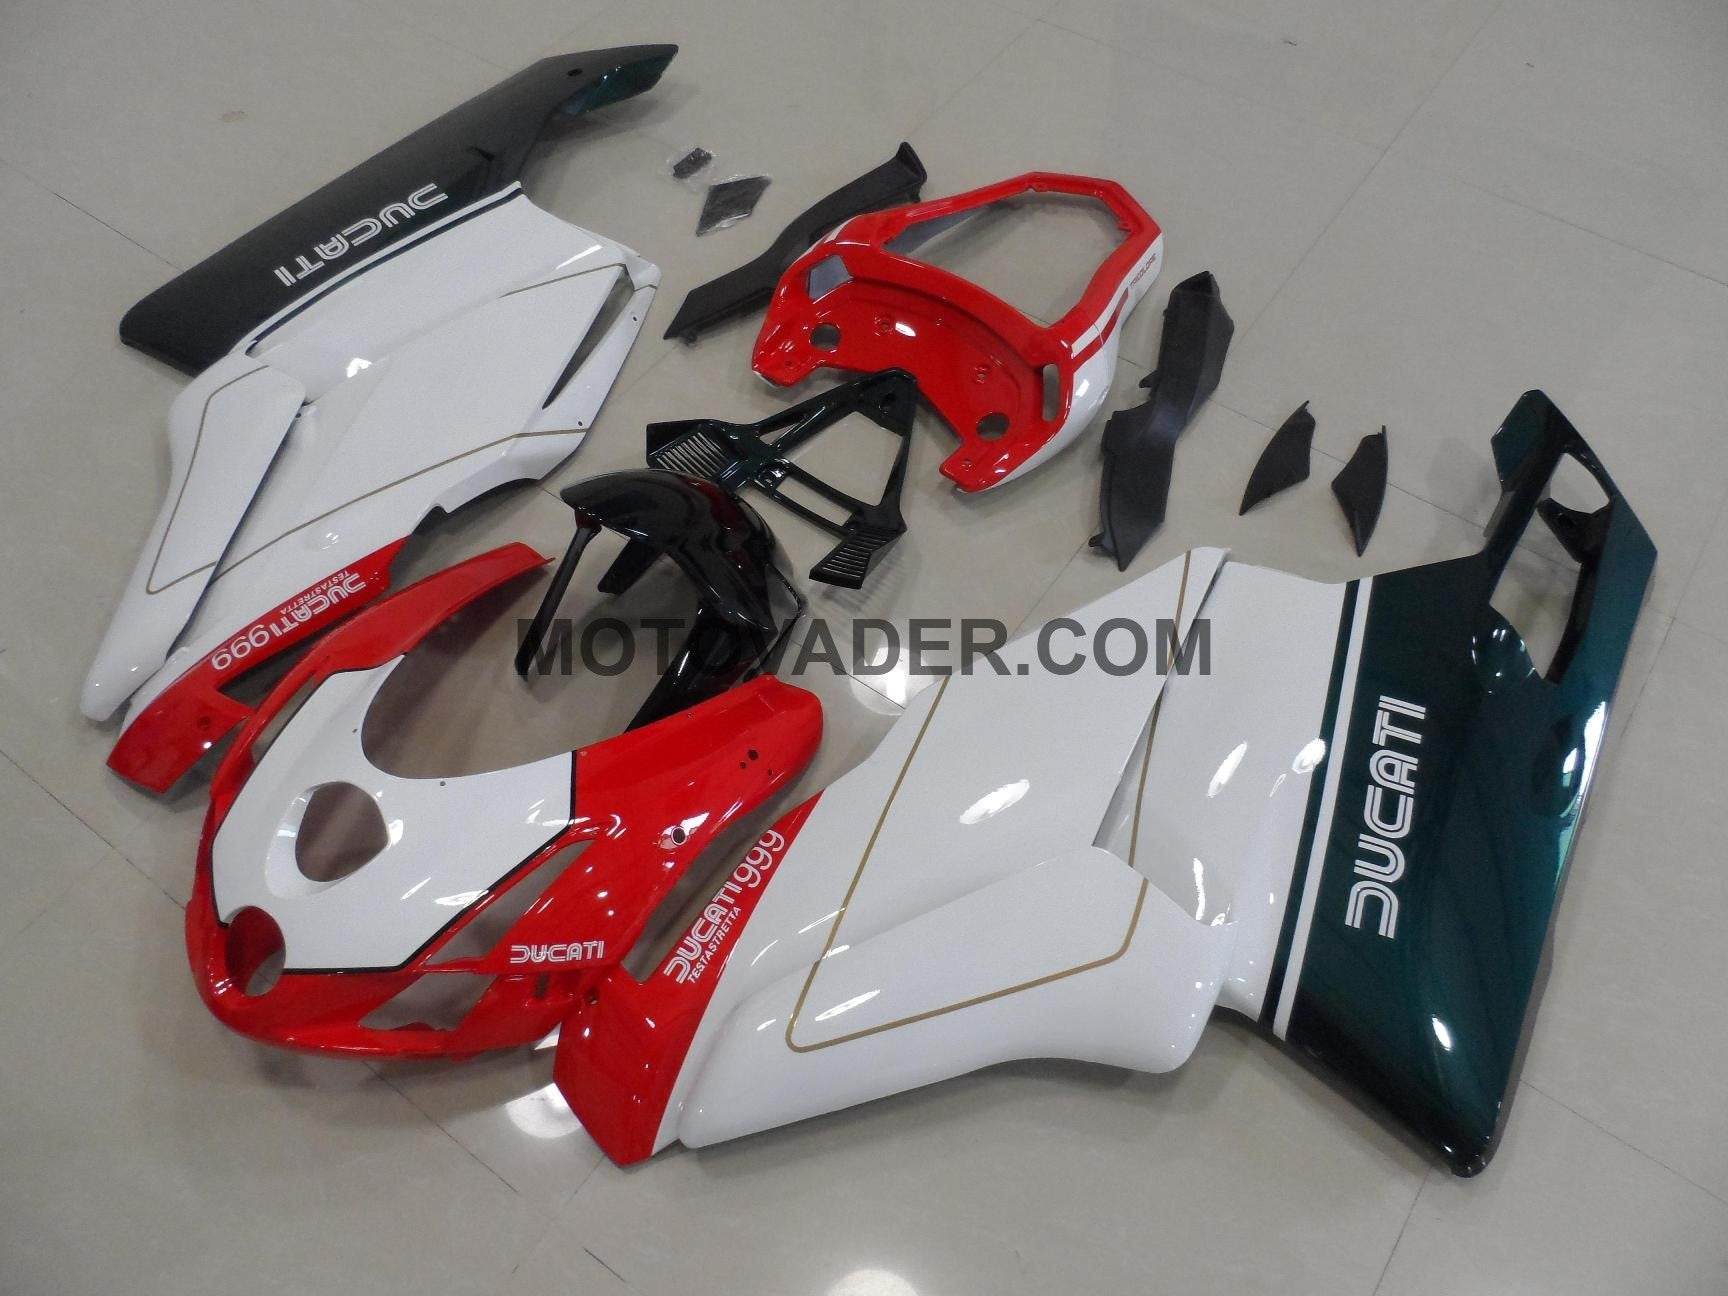 Ducati 999 2003-2004 Tricolor With Tail Open Fairing